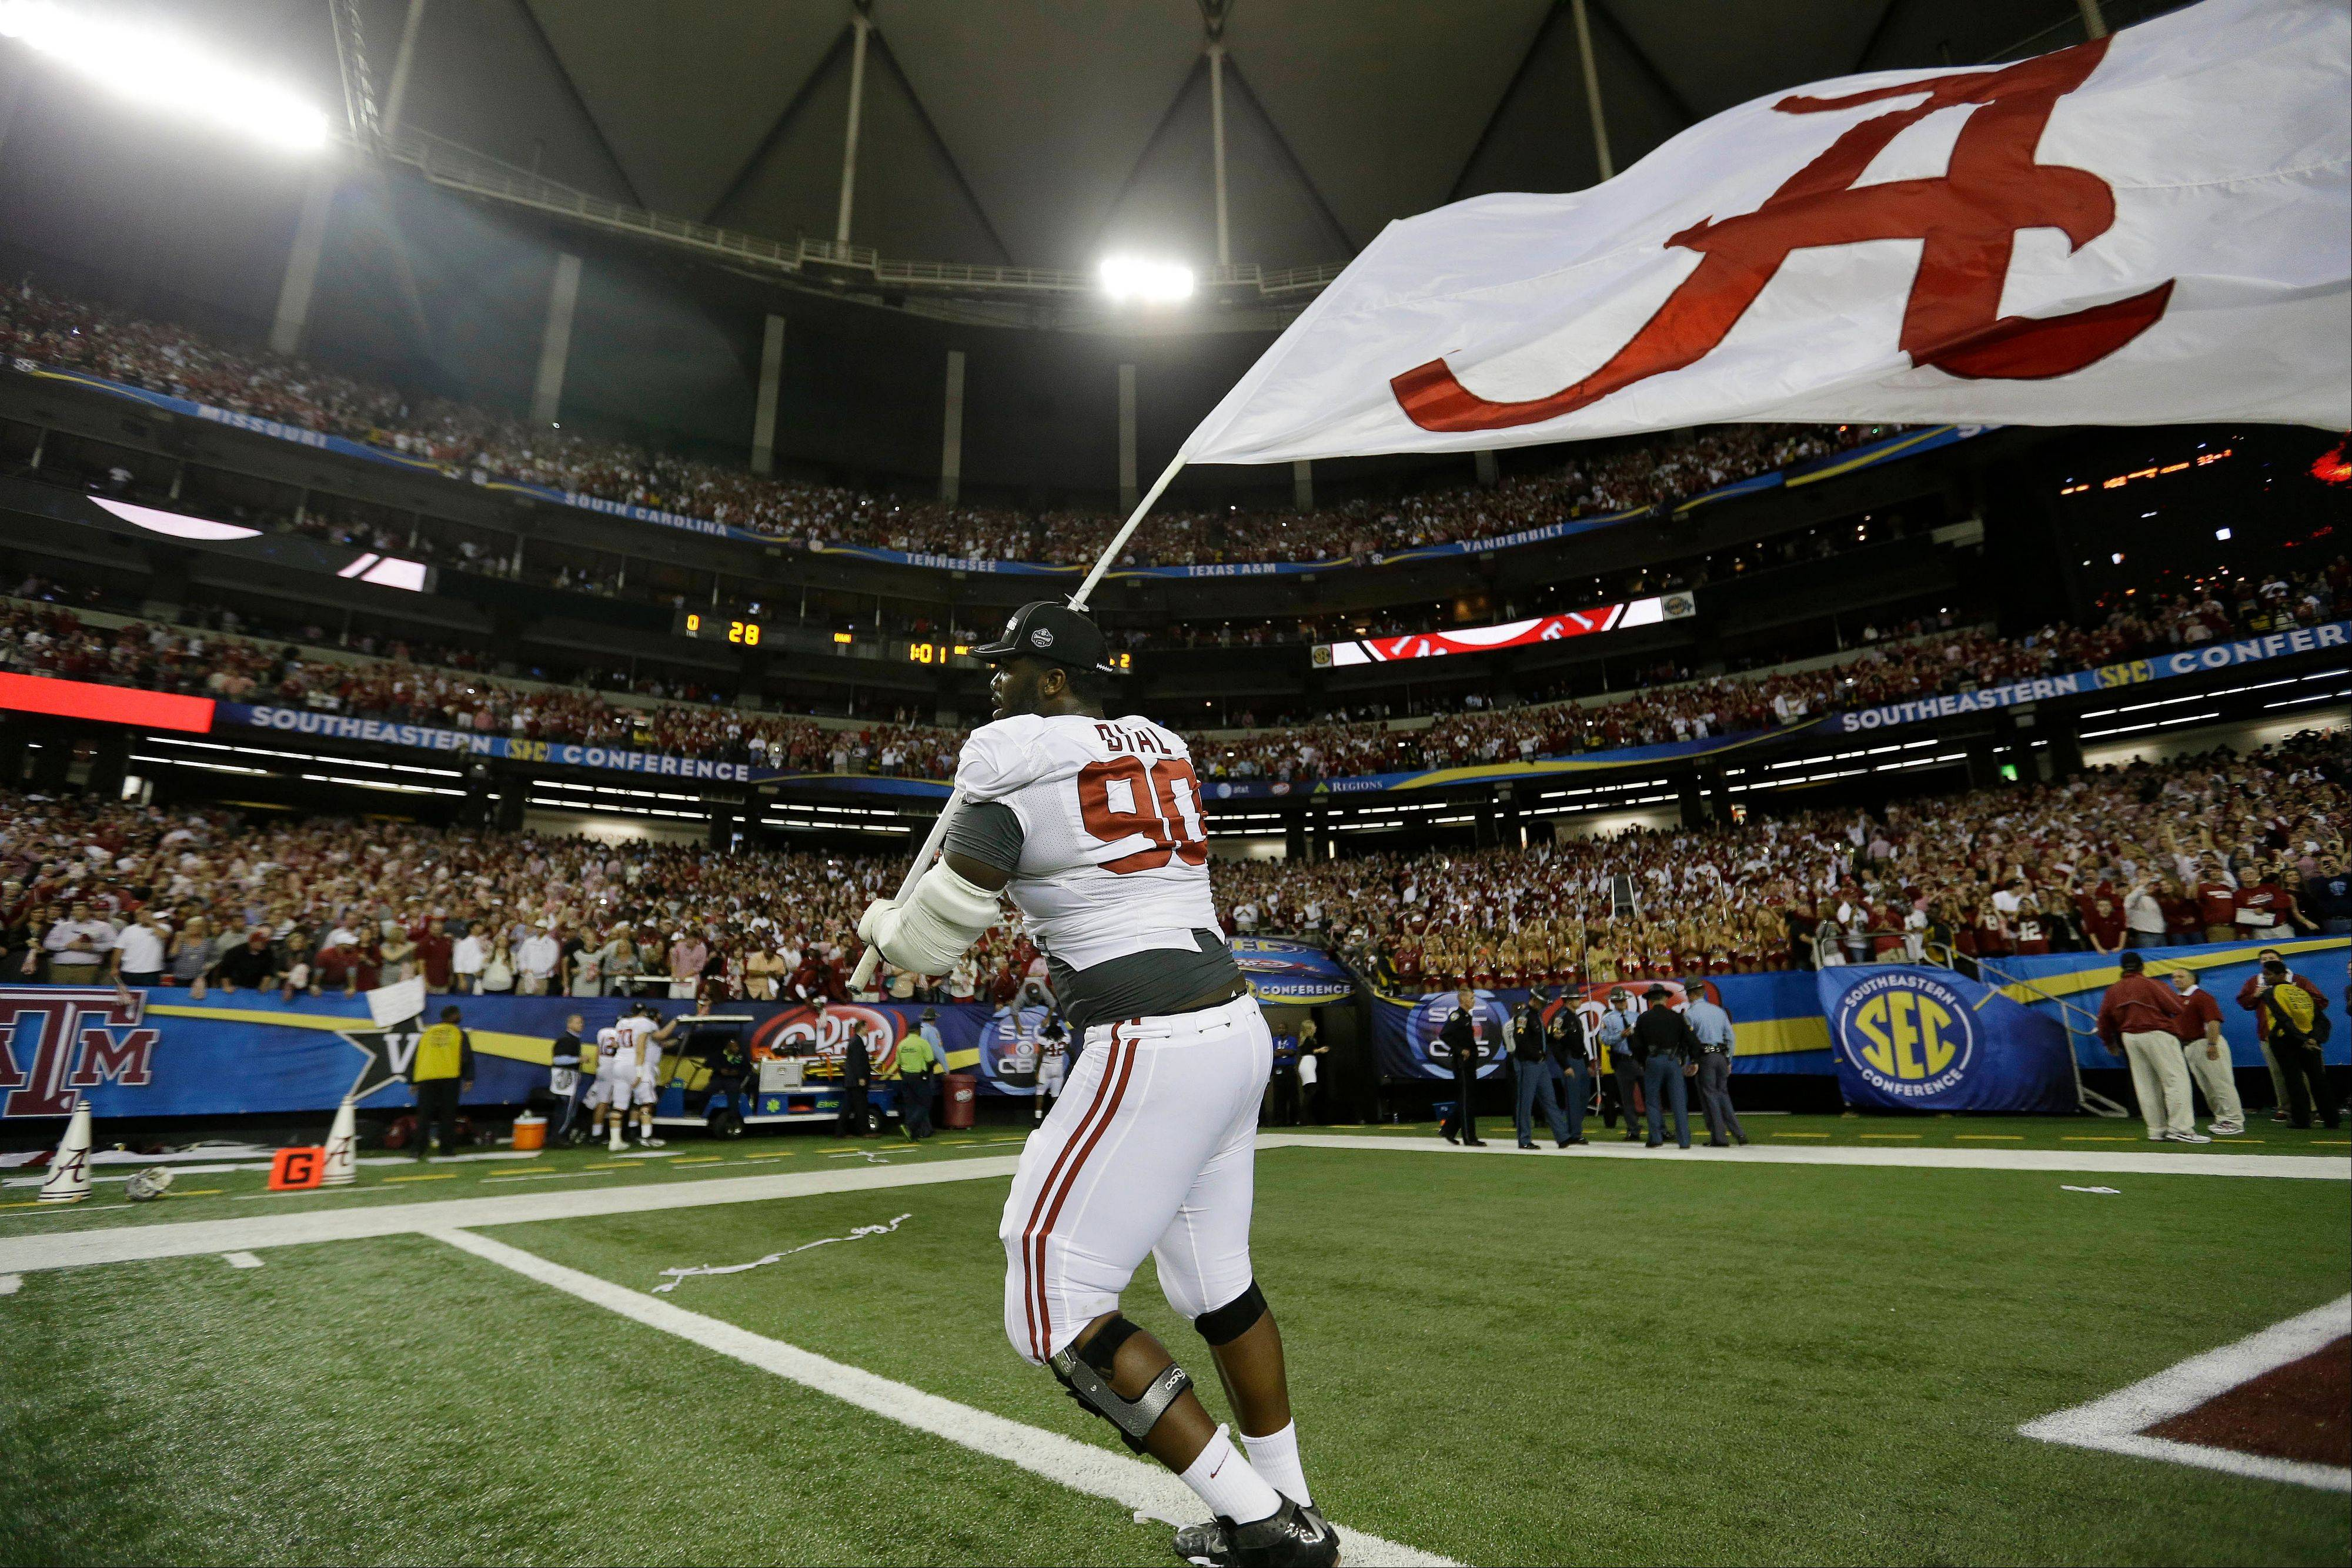 Alabama defensive lineman Quinton Dial runs on the field with a Alabama flag Saturday after their 32-28 win in the Southeastern Conference championship against Georgia in Atlanta.